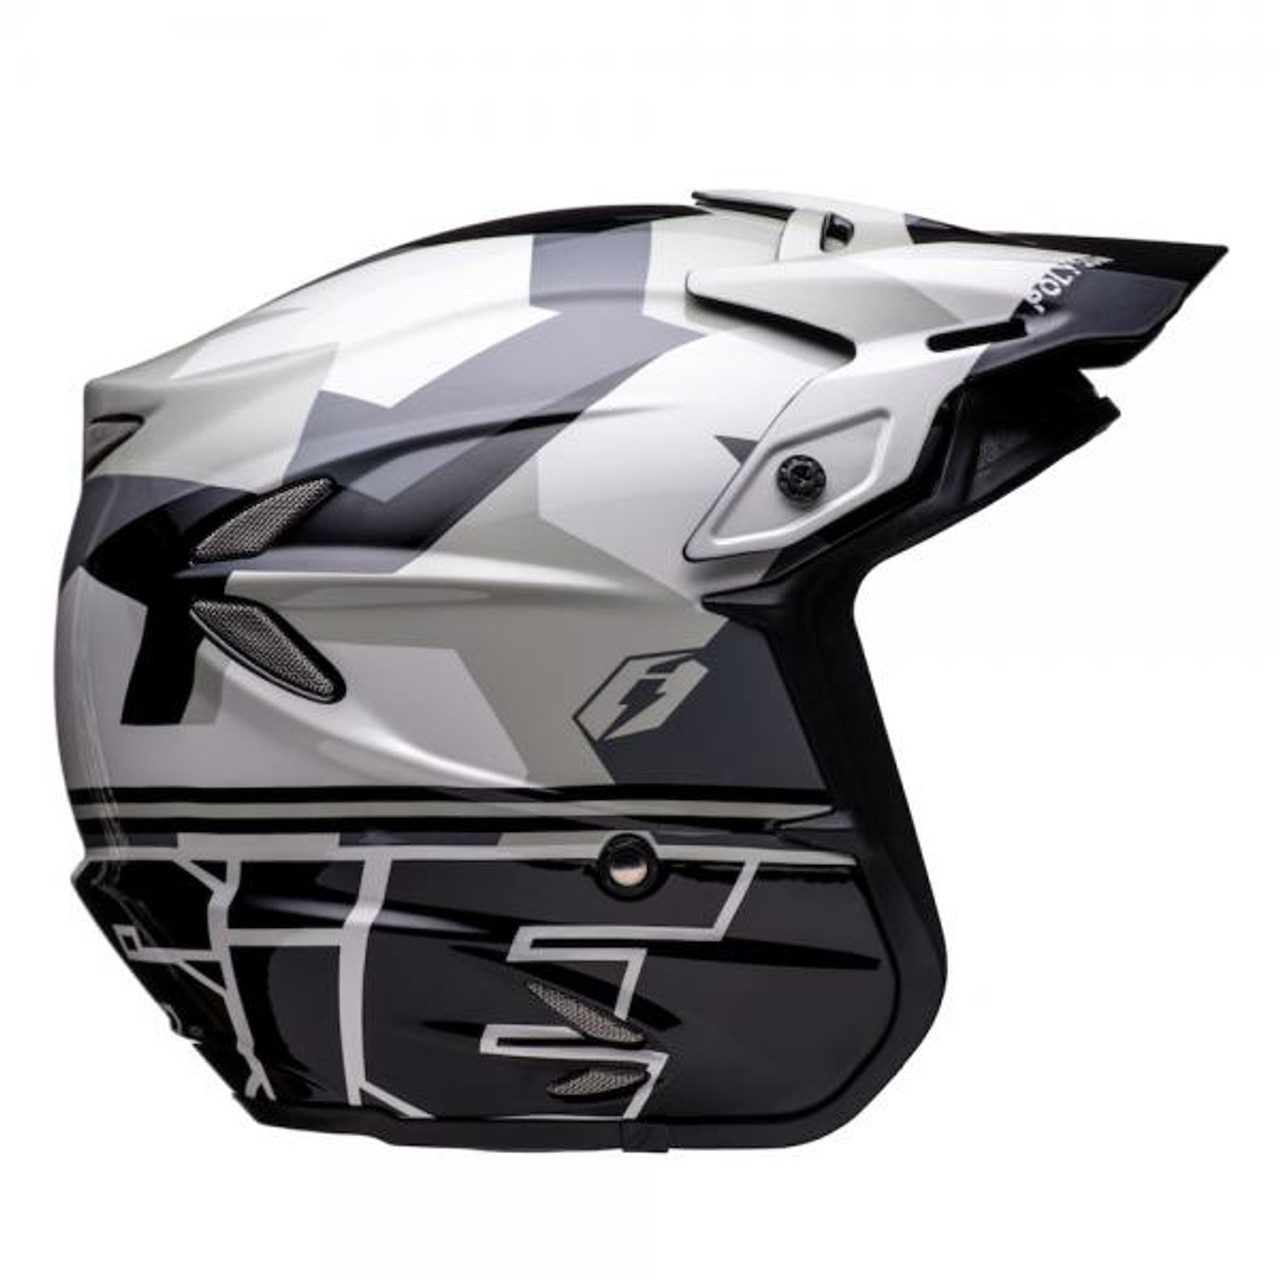 Helmet HT2 Polygon, black/silver/grey